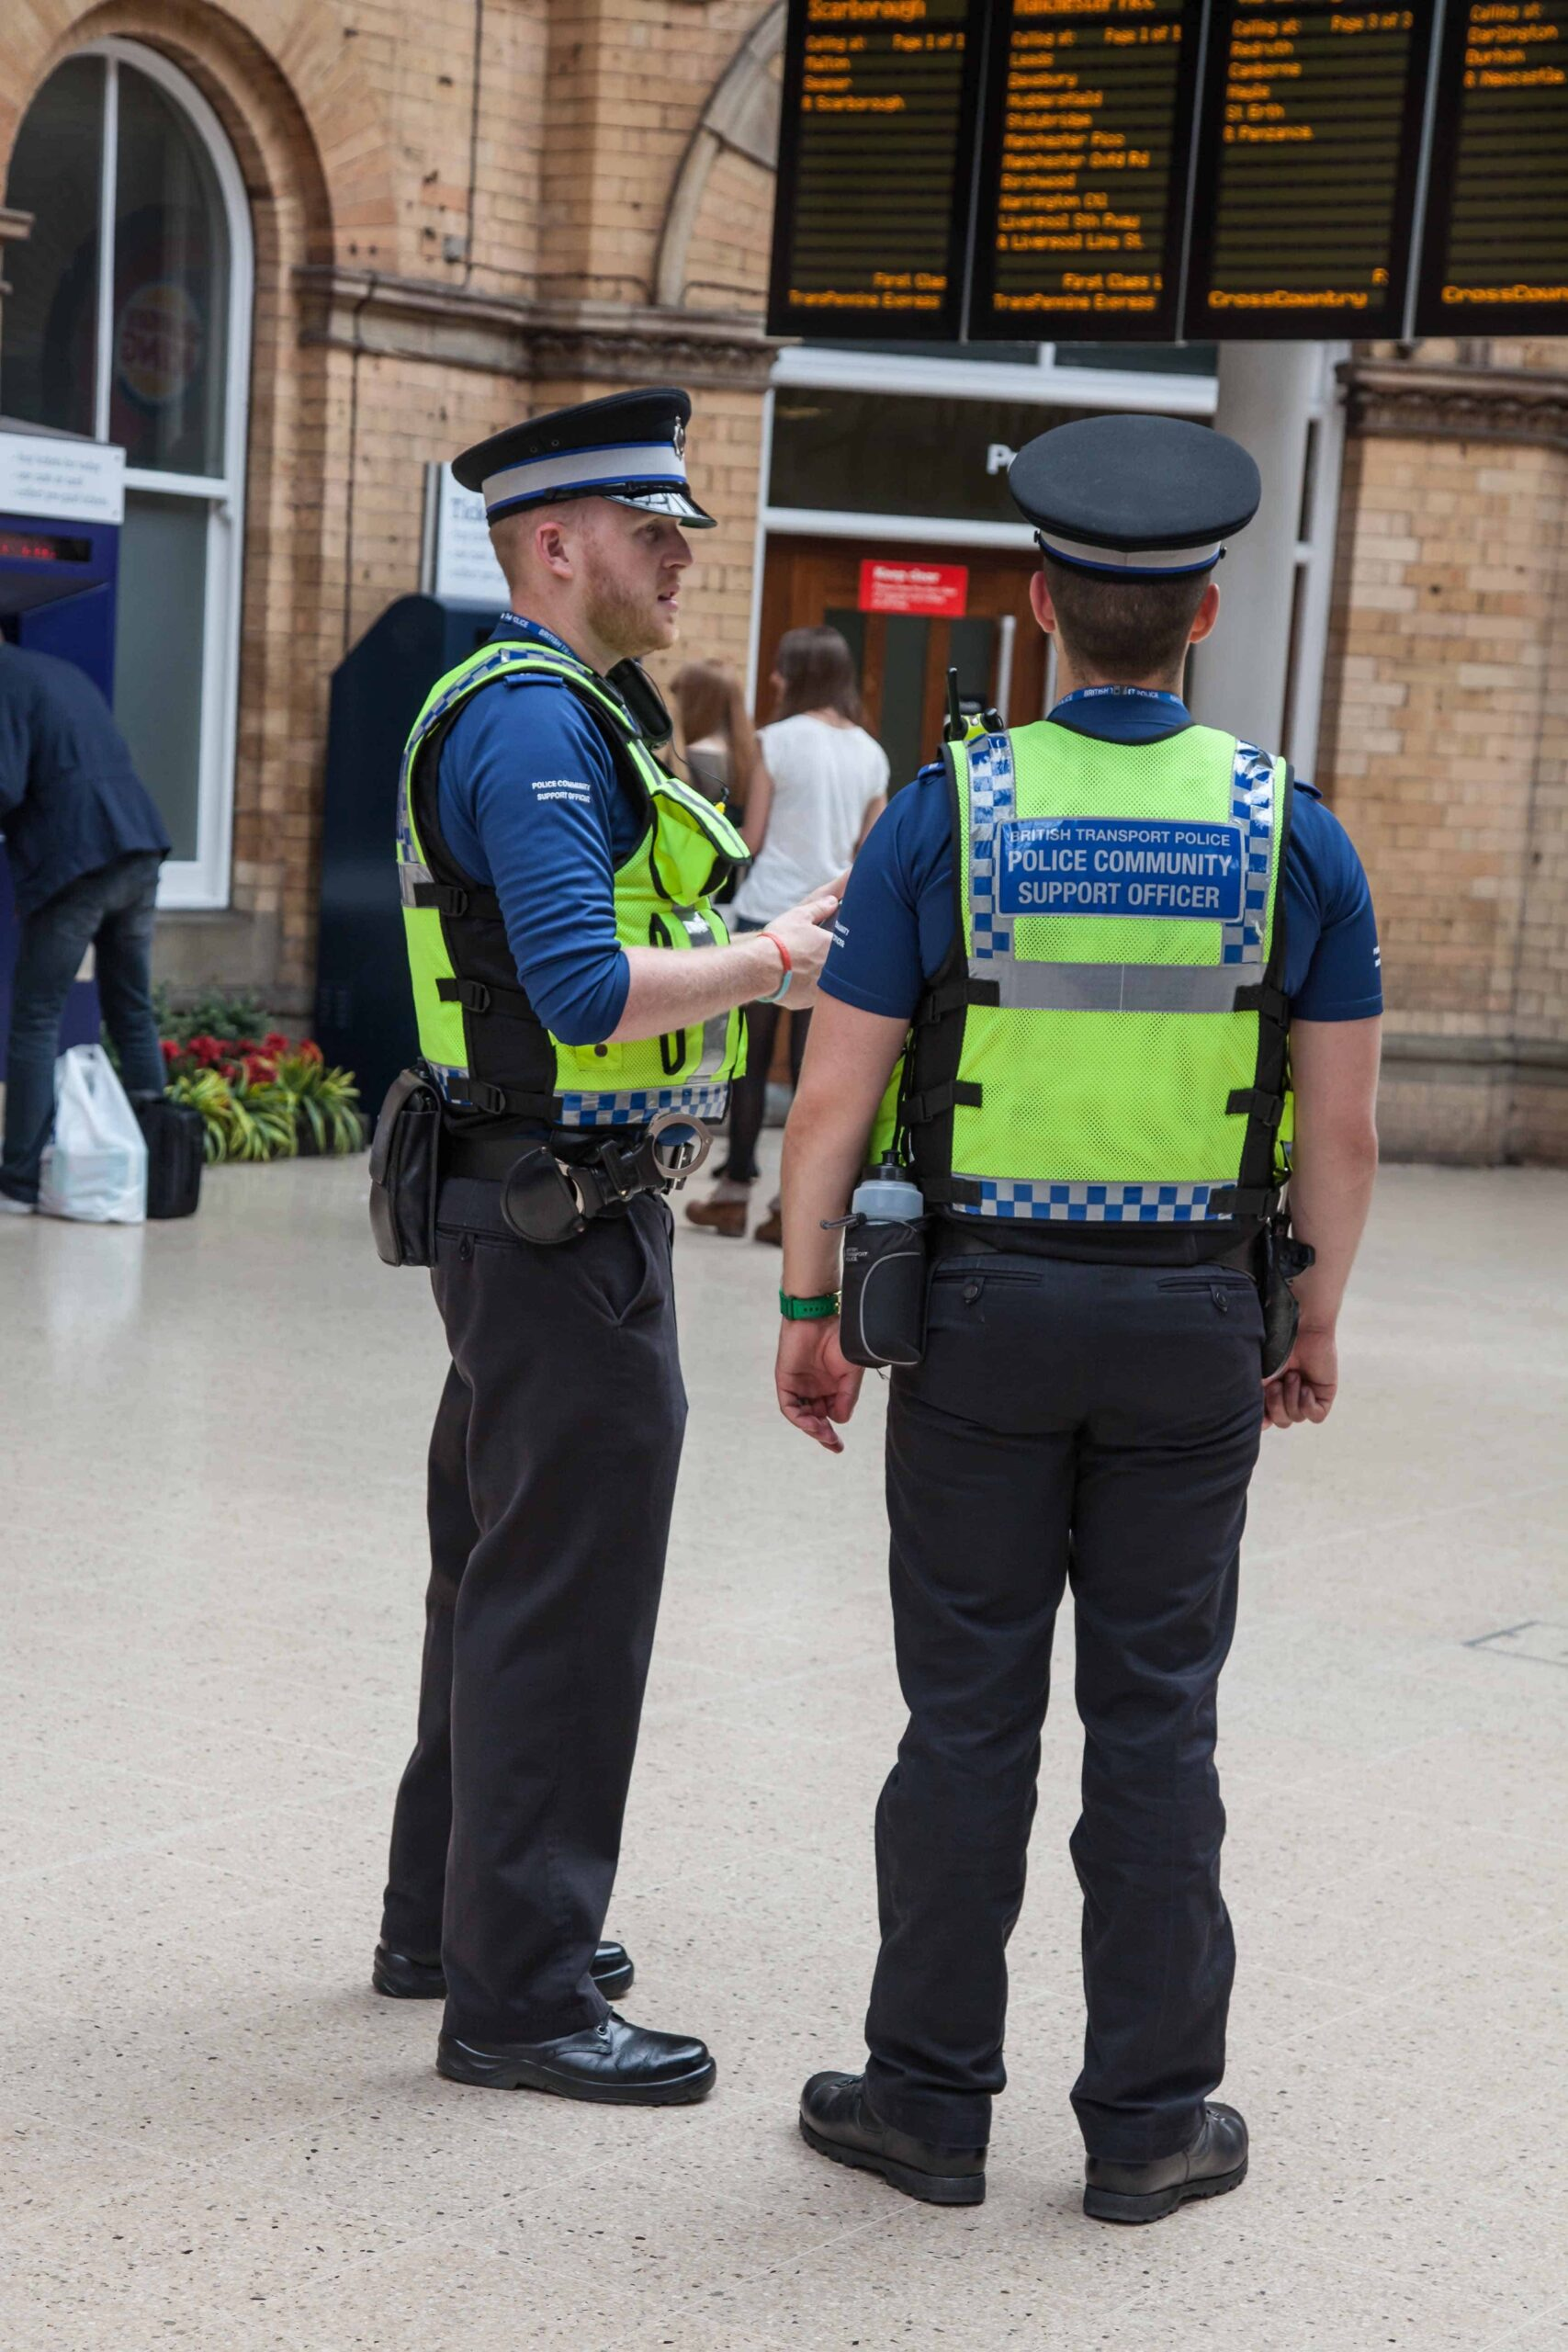 York, England - June 16, 2015: British Transport Police Community Support Officers York Railway Station on the main concourse talking and people